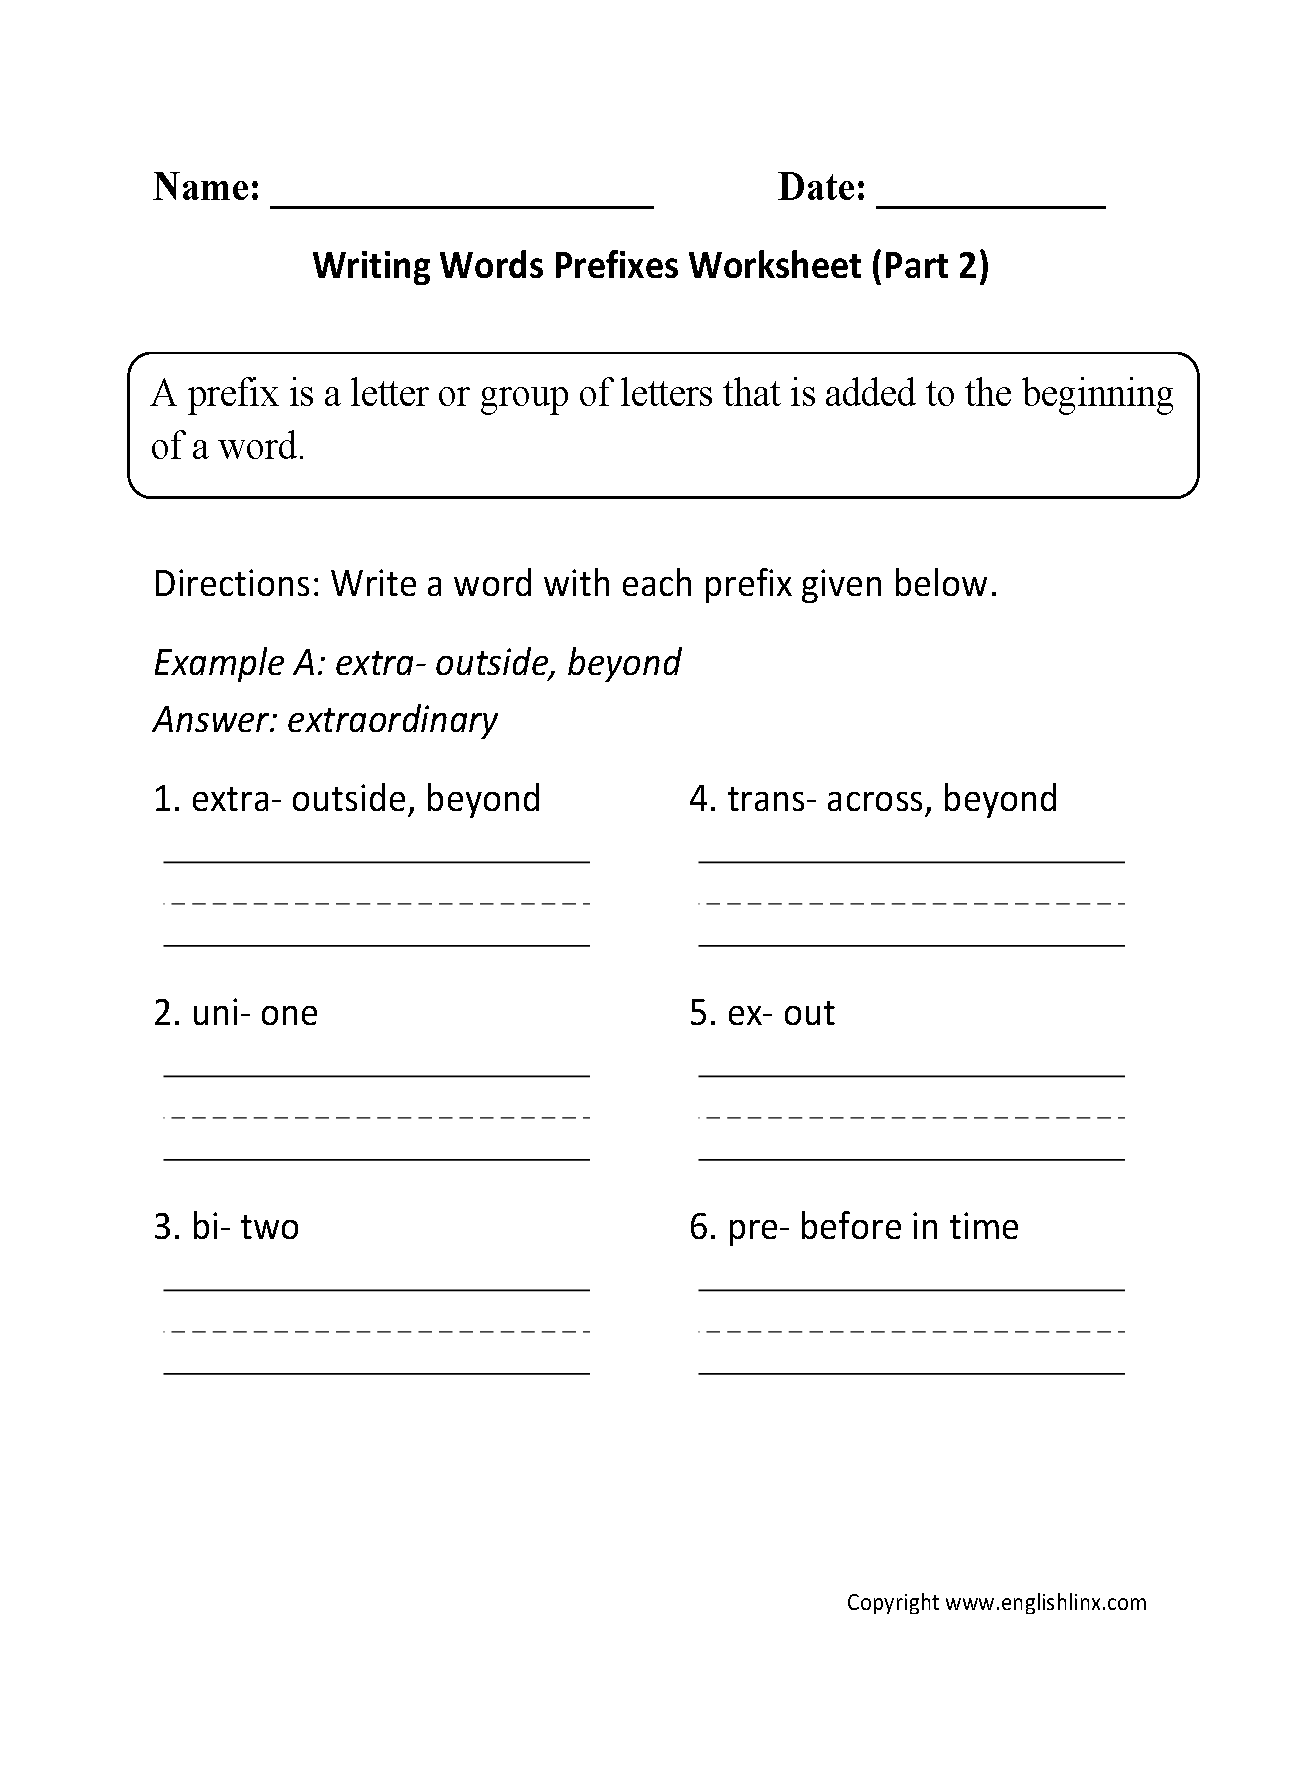 Englishlinx     Prefi Worksheets besides Transition Metals and Coordination Chemistry also Englishlinx     Prefi Worksheets as well prefi suffi worksheet   Third Grade   Pinterest   Prefi also Prefix  Uni  Bi  Tri  Quad by Teaching  My Hobby   TpT as well Latin Prefi I Spelling Patterns  Uni   bi   tri   Lesson Plan in addition Englishlinx     Prefi Worksheets moreover Root Words Prefi And Suffi Worksheets Worksheets for all in addition Prefix list and or sort for uni  bi  tri by Dr Bs Store   TpT in addition Worksheets and Activities   Prefi and Suffi  EnchantedLearning together with Prefi  Roots  and Suffi   ppt download likewise Building Words with Prefi Worksheet likewise Englishlinx     Prefi Worksheets together with  as well Bi Prefix Lesson Plans   Worksheets Reviewed by Teachers as well . on uni bi tri prefix worksheets